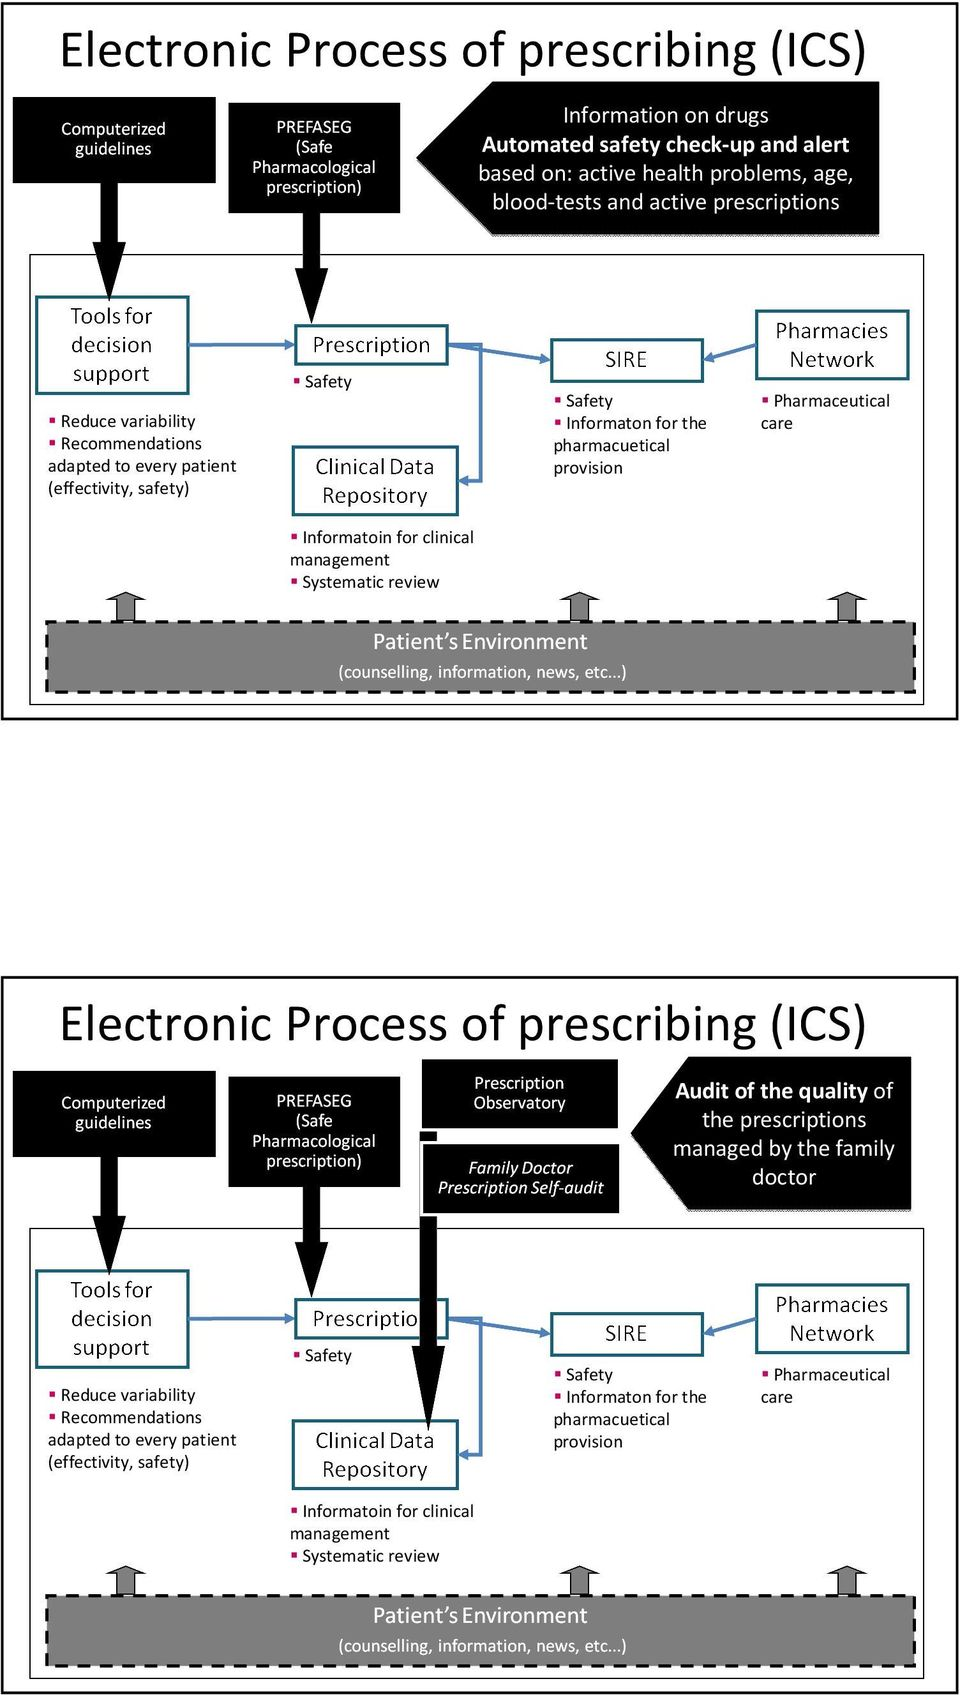 Informatoin for clinical management Systematic review Electronic Process of prescribing (ICS) Audit of the quality of the prescriptions managed by the family doctor